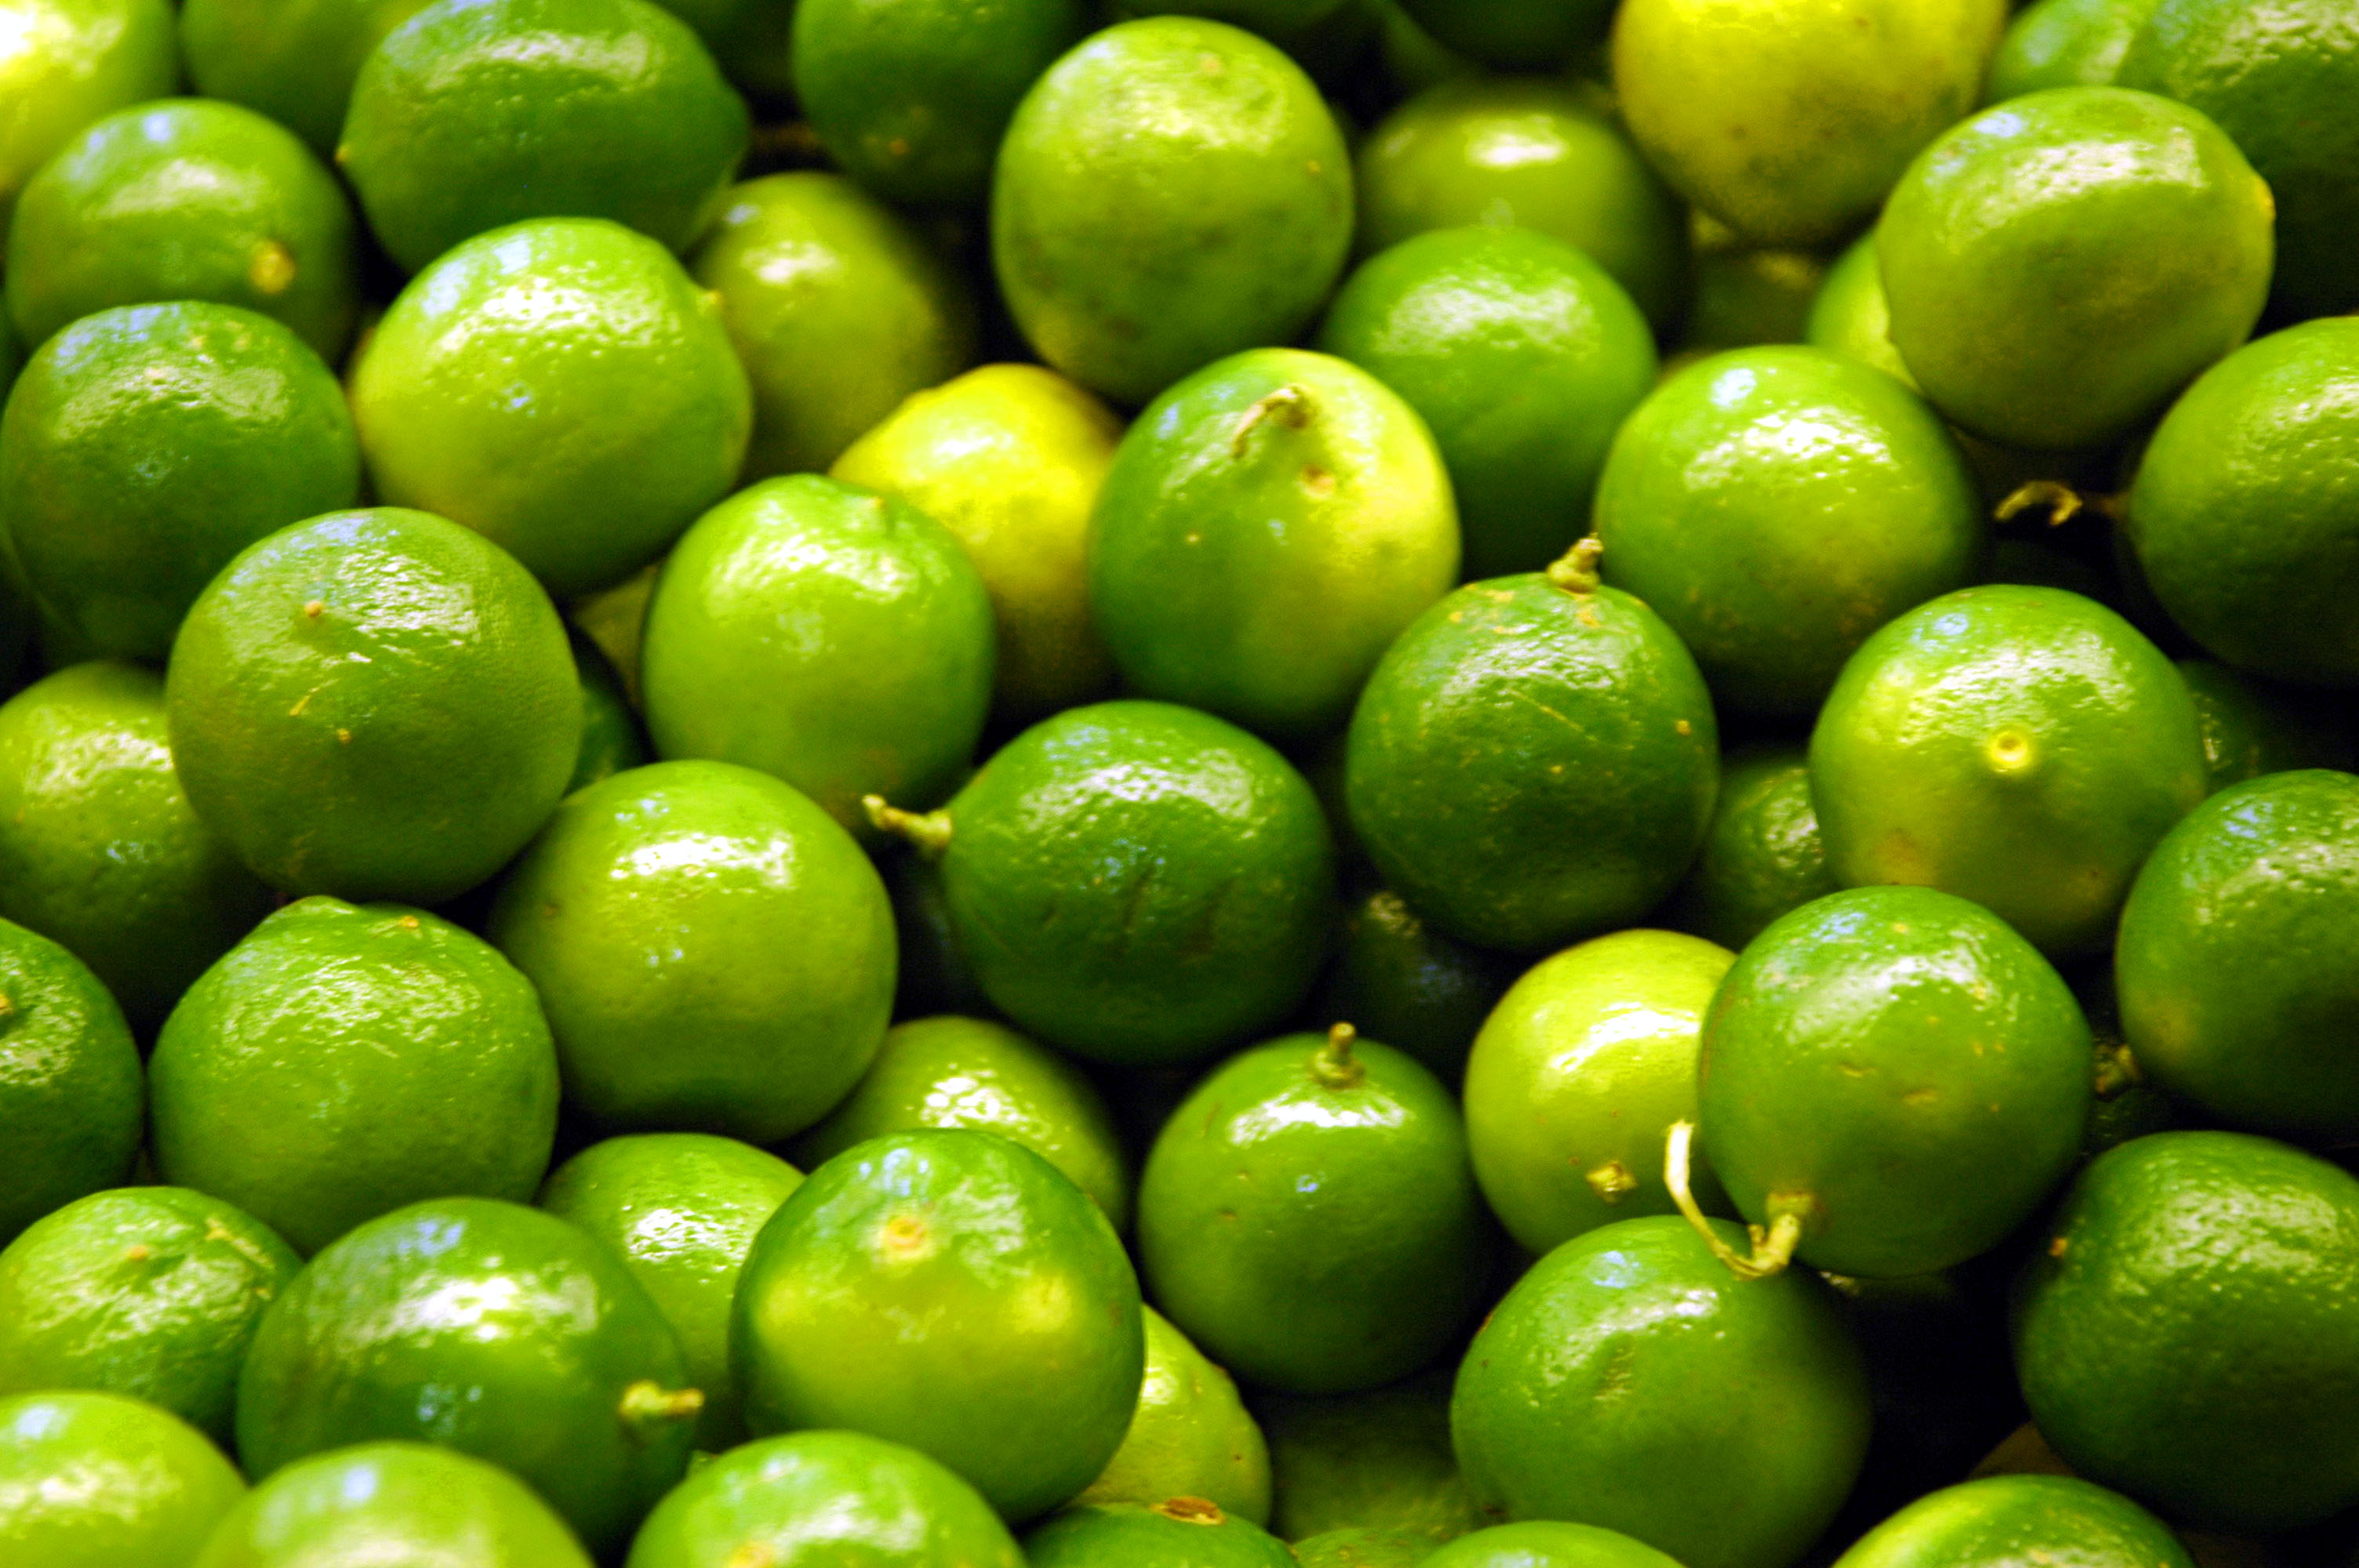 http://upload.wikimedia.org/wikipedia/commons/f/f2/Limes.jpg